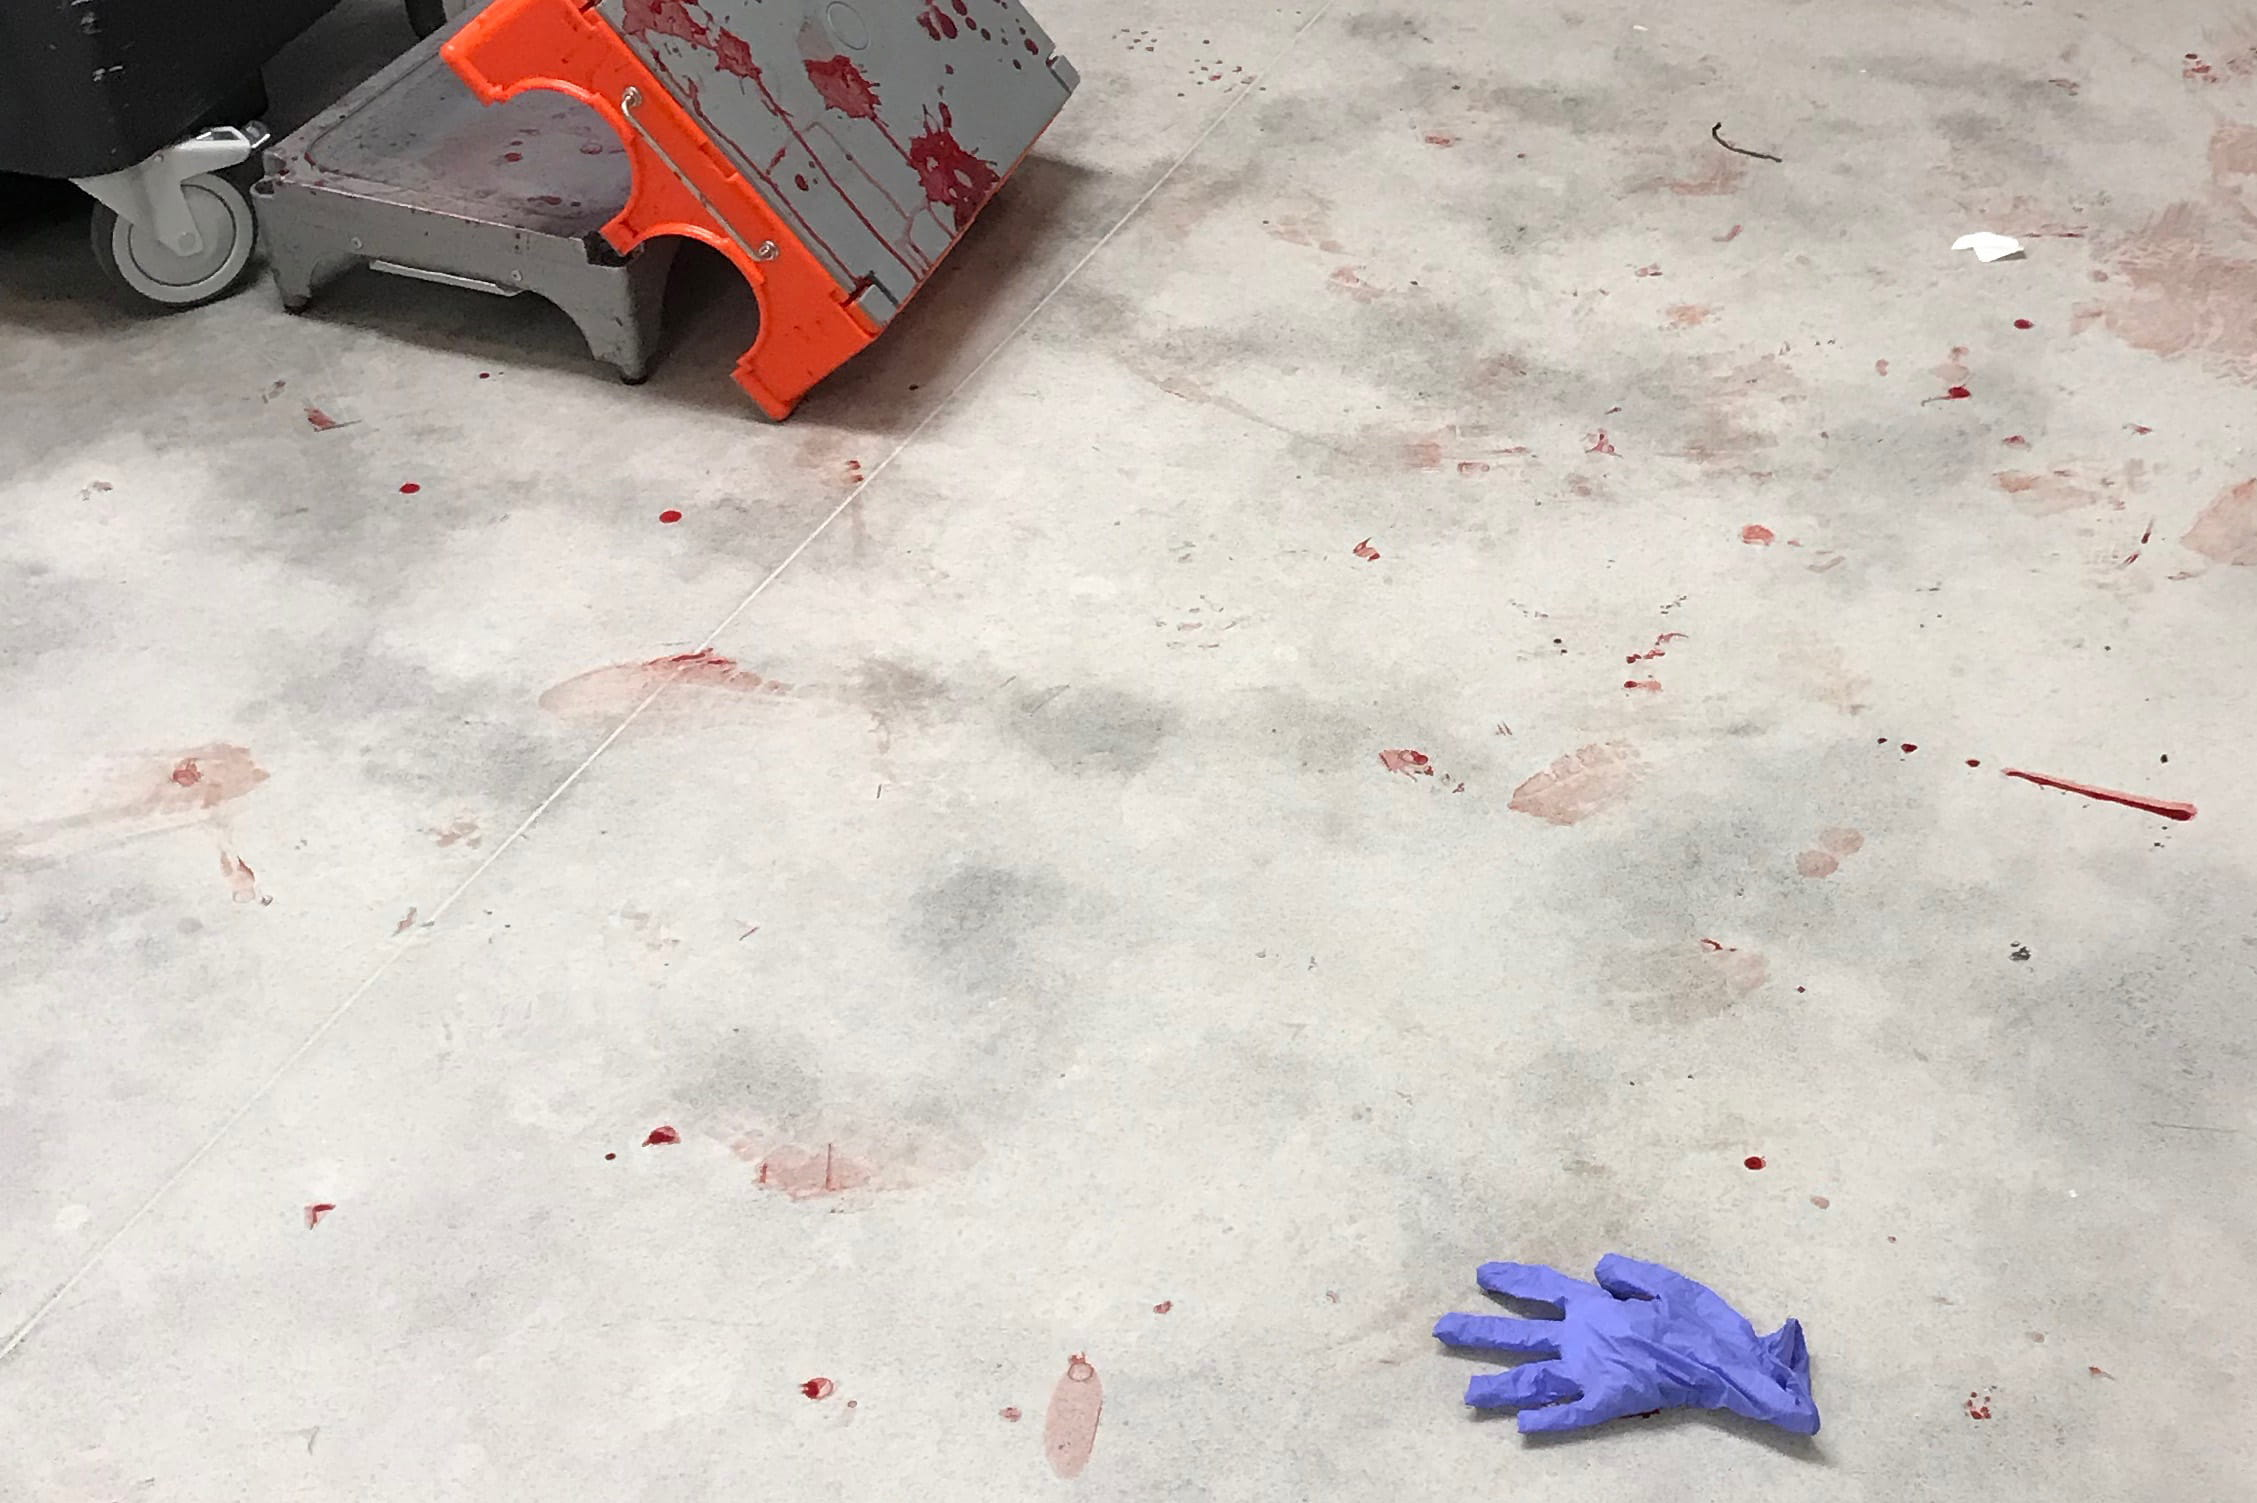 A lone latex glove on floor of OR